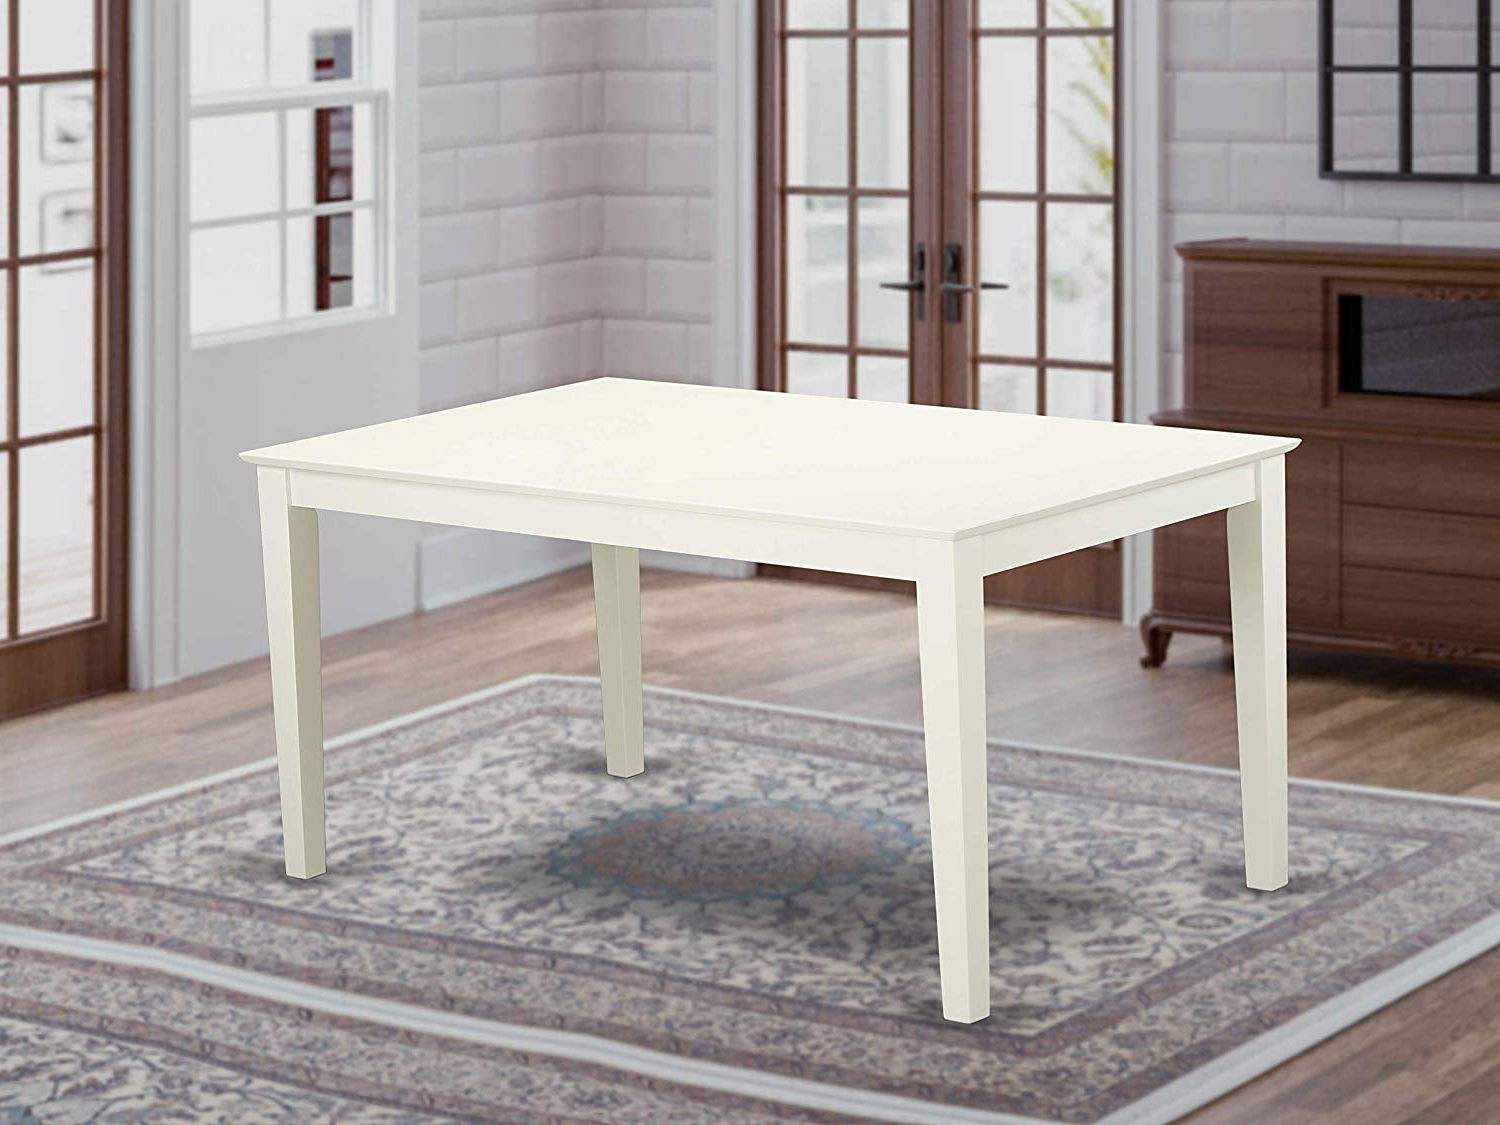 "Widely Used Wood Top Dining Tables Regarding Capri Rectangular Dining Table 36""x60"" With Solid Wood Top In Linen White  Finish (Gallery 1 of 30)"